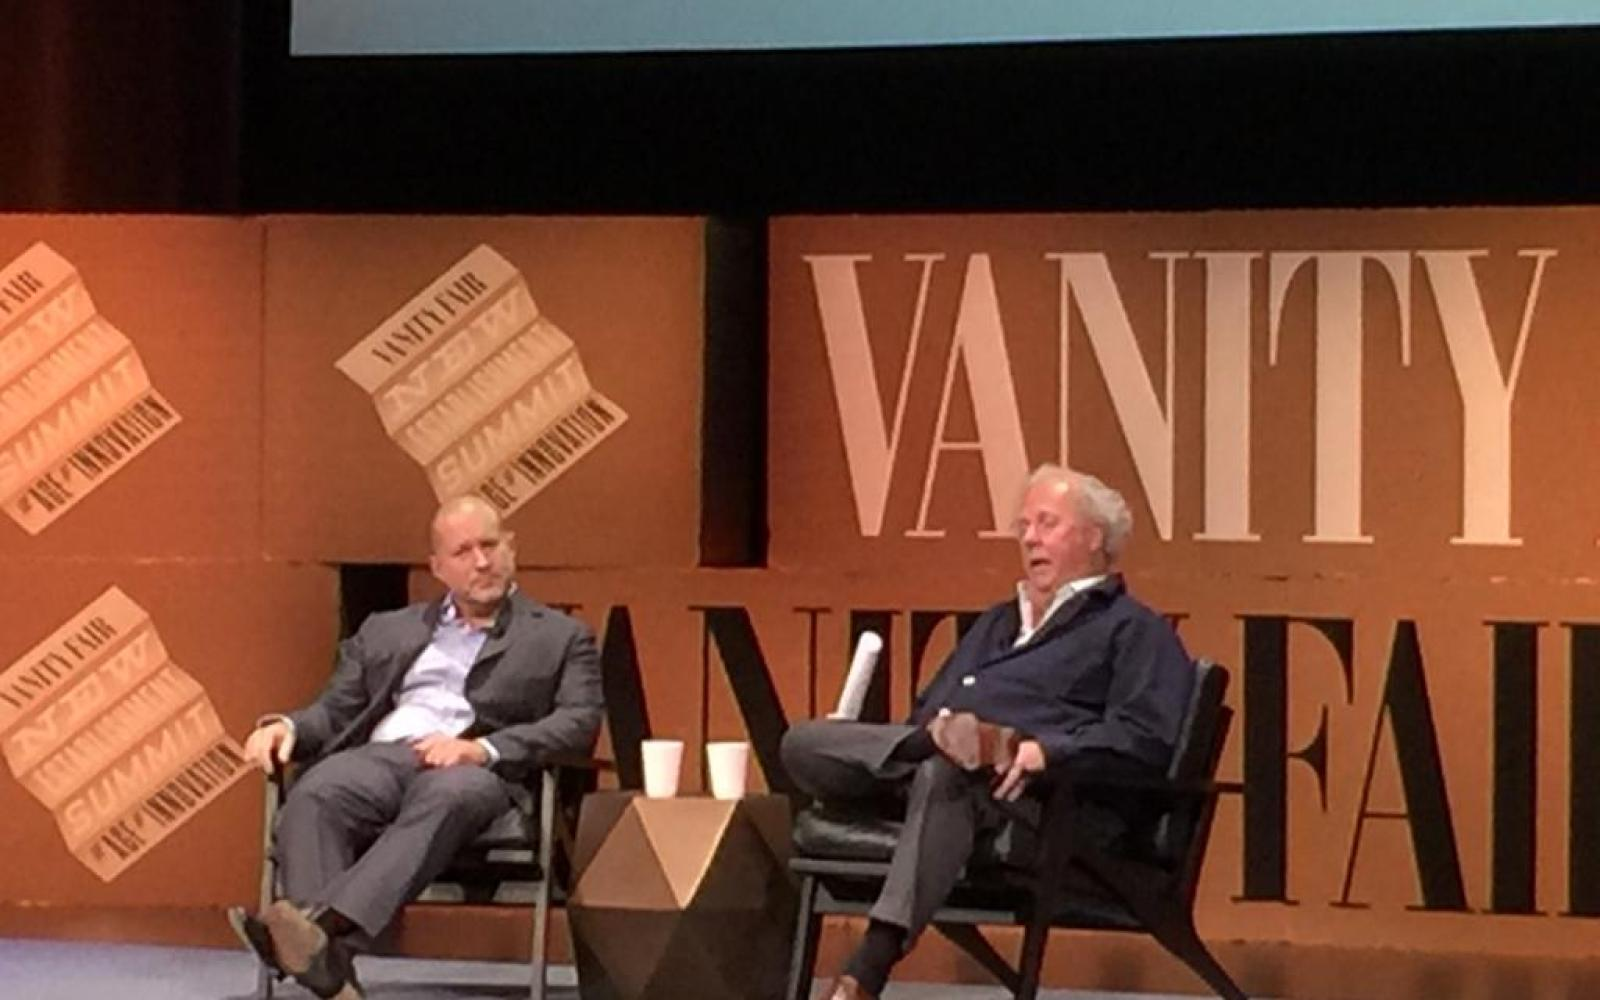 Jony Ive takes the stage at Vanity Fair's New Establishment Summit, talks design of course (Video)